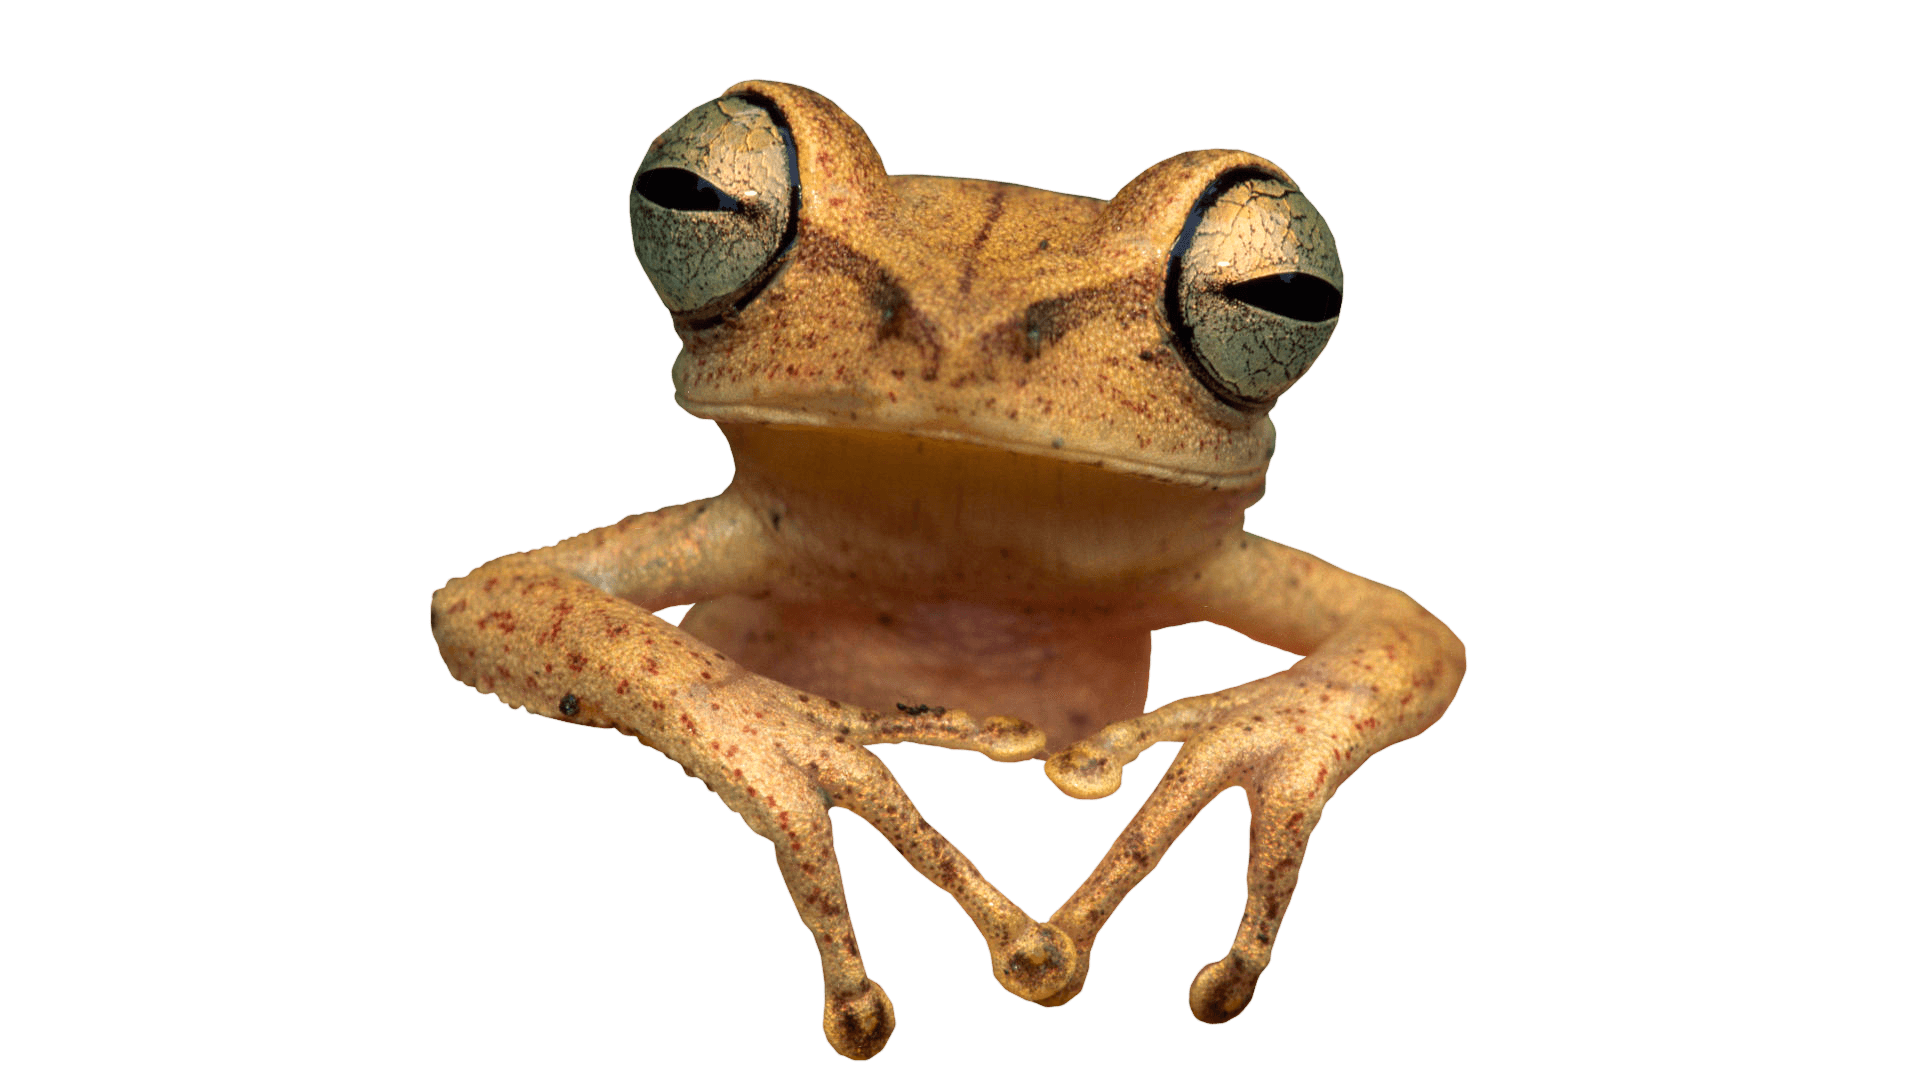 toad transparent